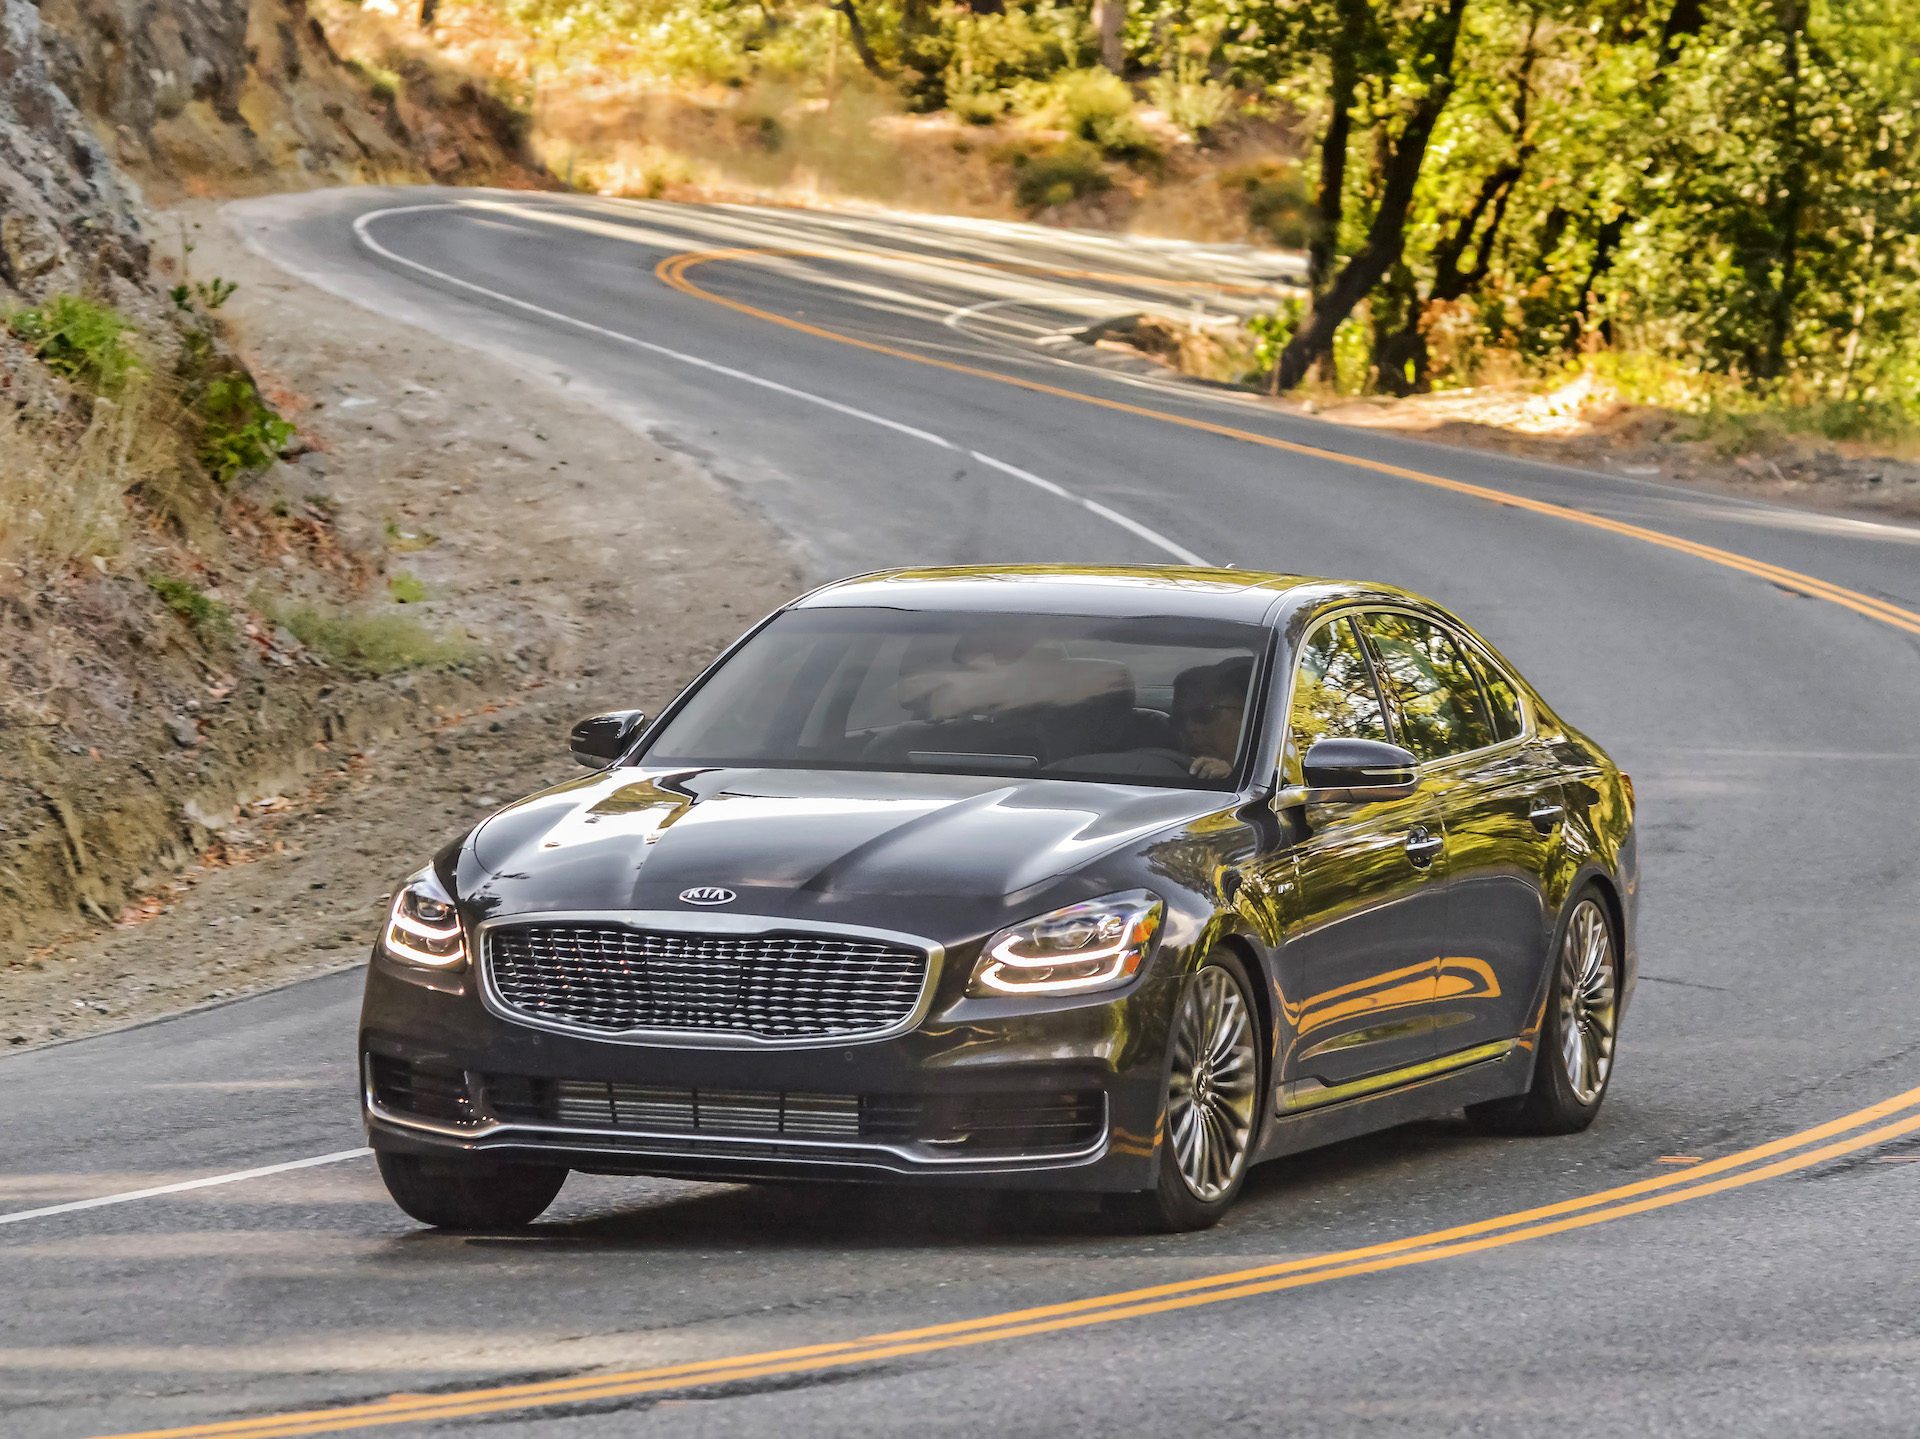 2020 Kia K900 Concept and Review